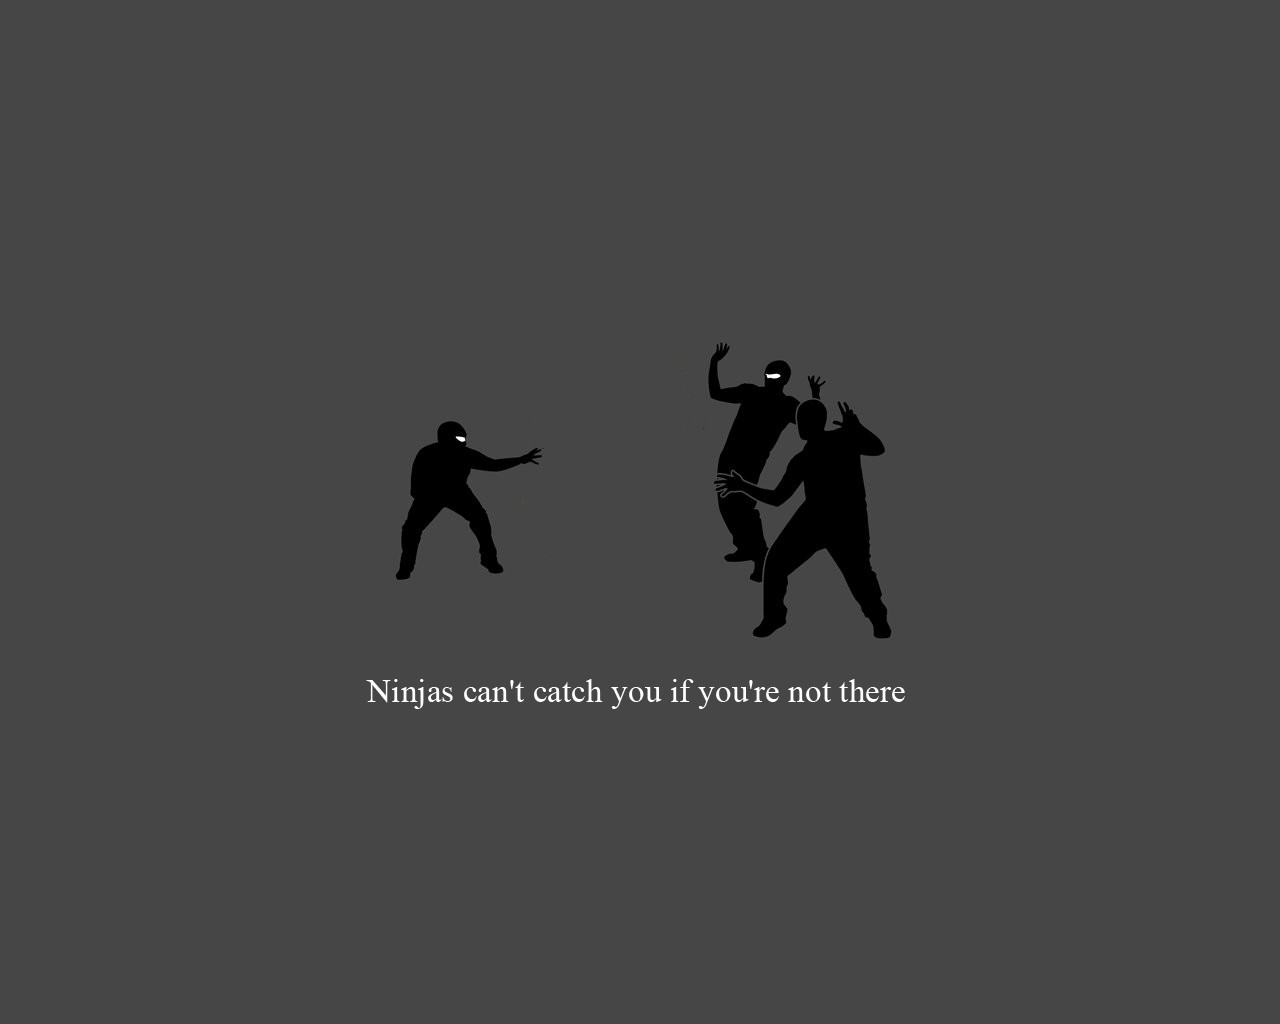 Funny Ninjas Wallpaper 1280x1024 Funny Ninjas Cant Catch You If 1280x1024